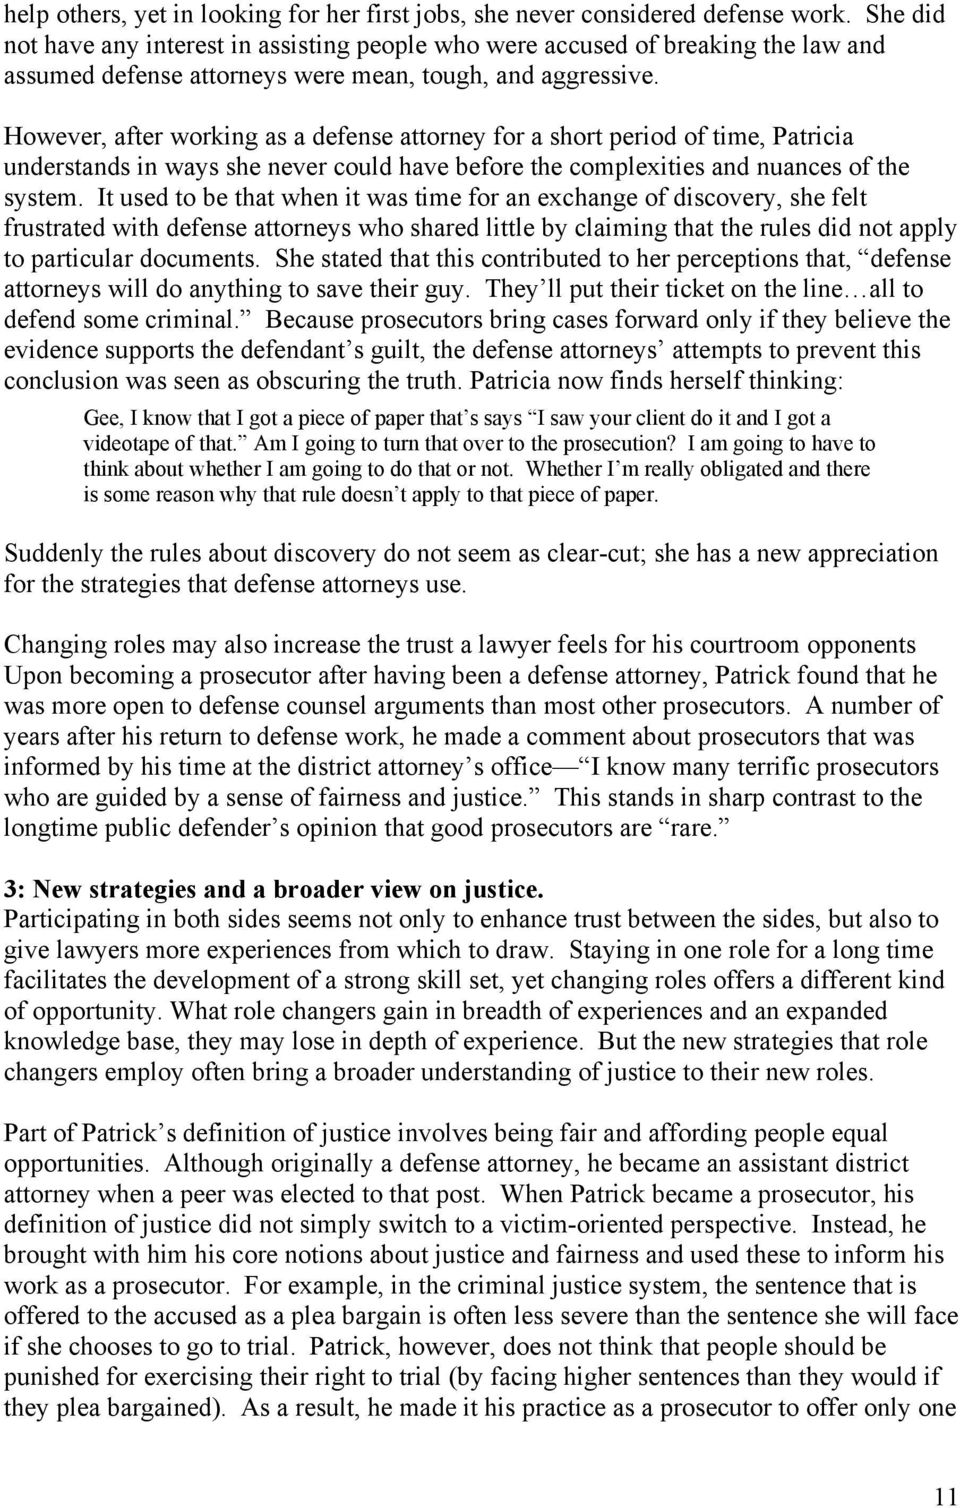 However, after working as a defense attorney for a short period of time, Patricia understands in ways she never could have before the complexities and nuances of the system.